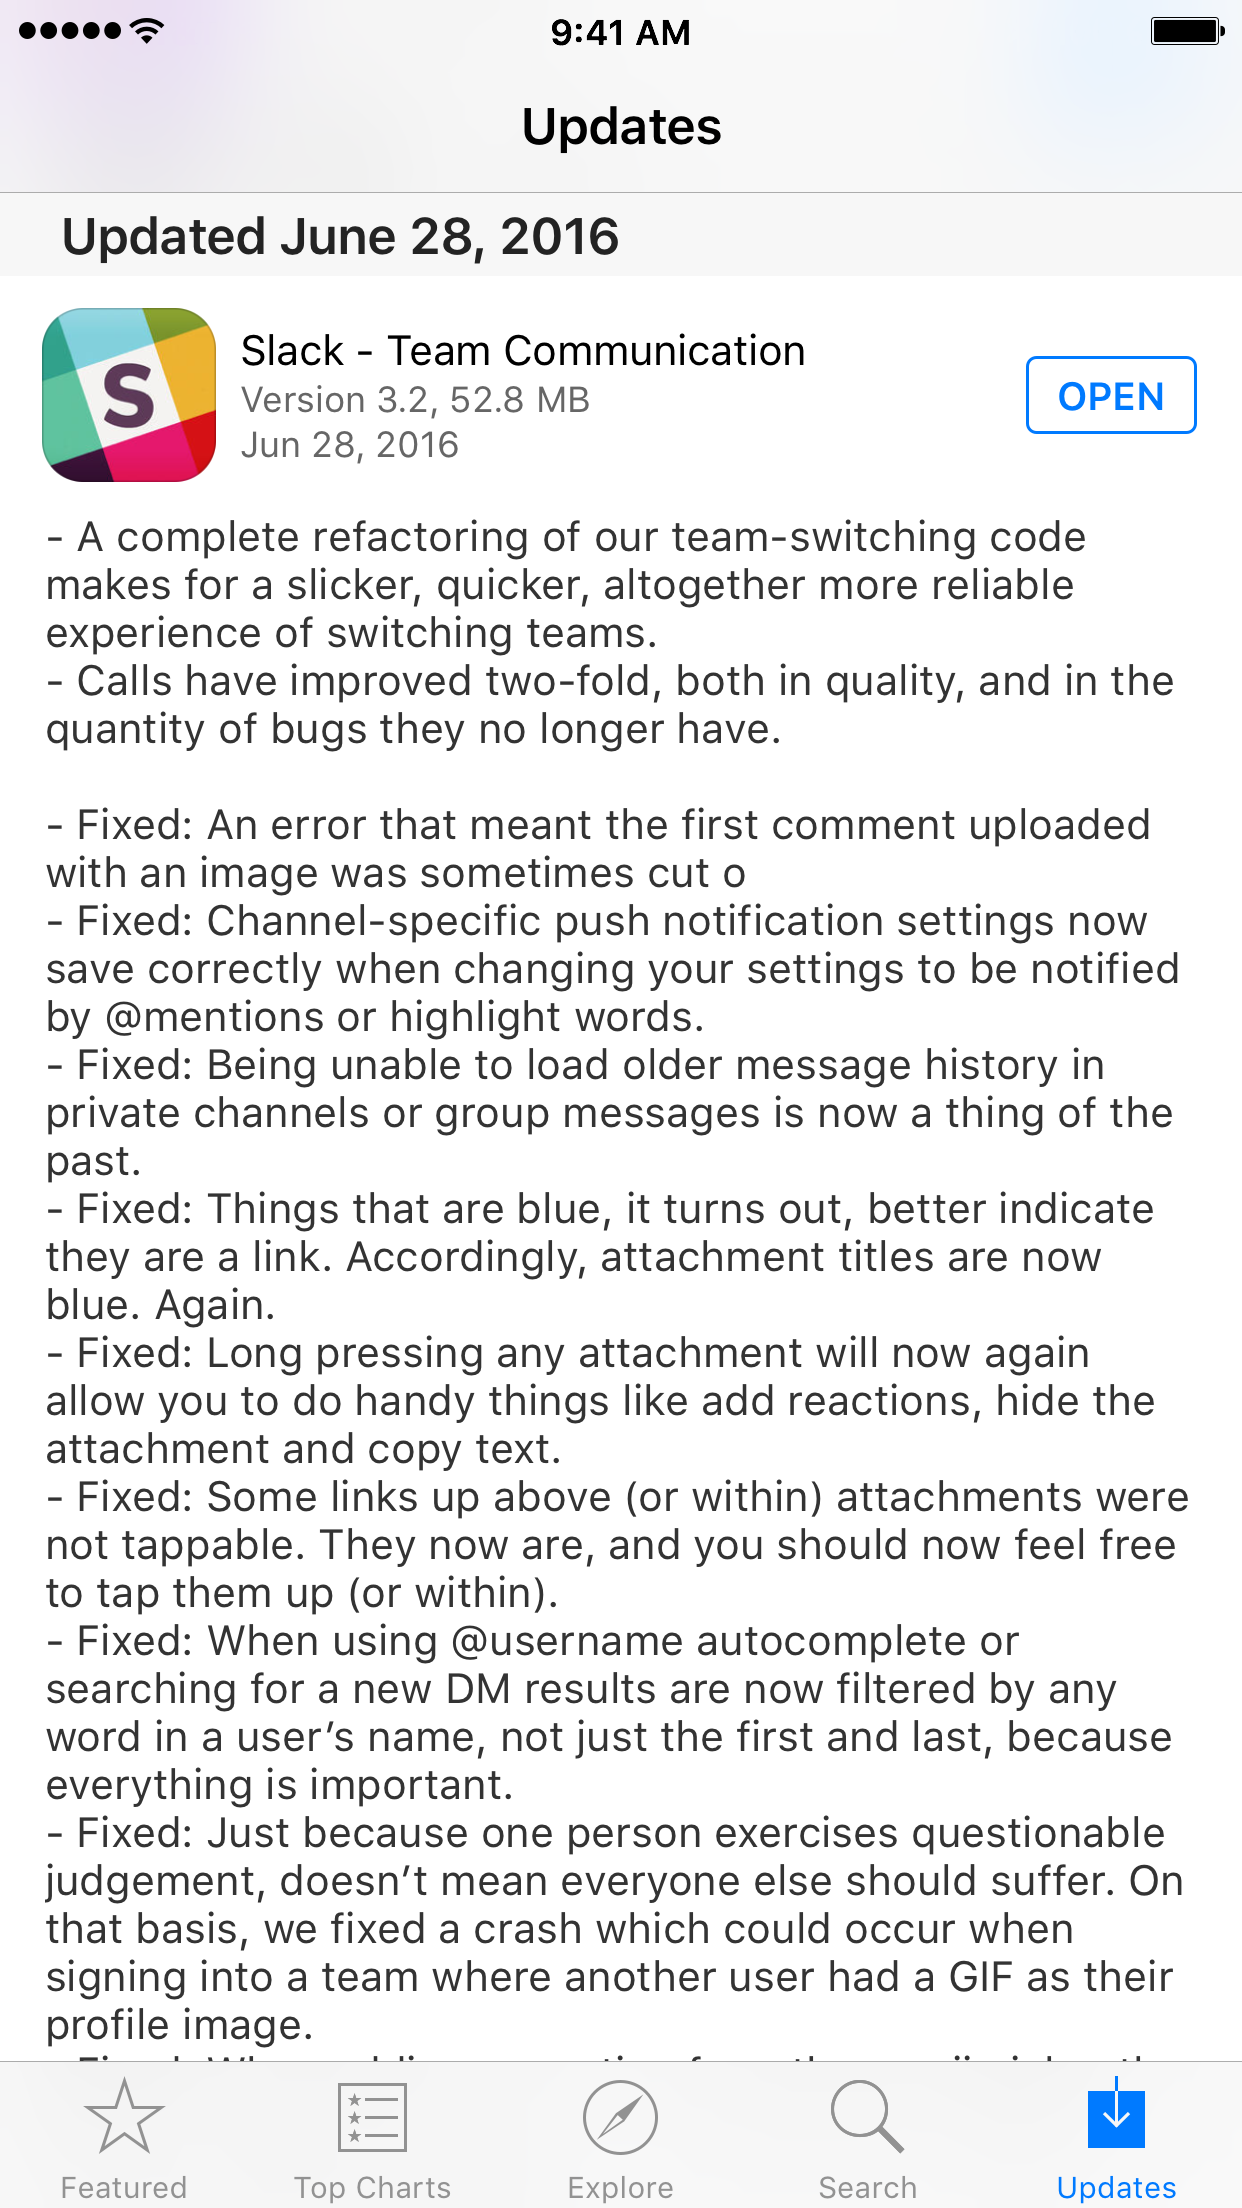 Good App Store app change log